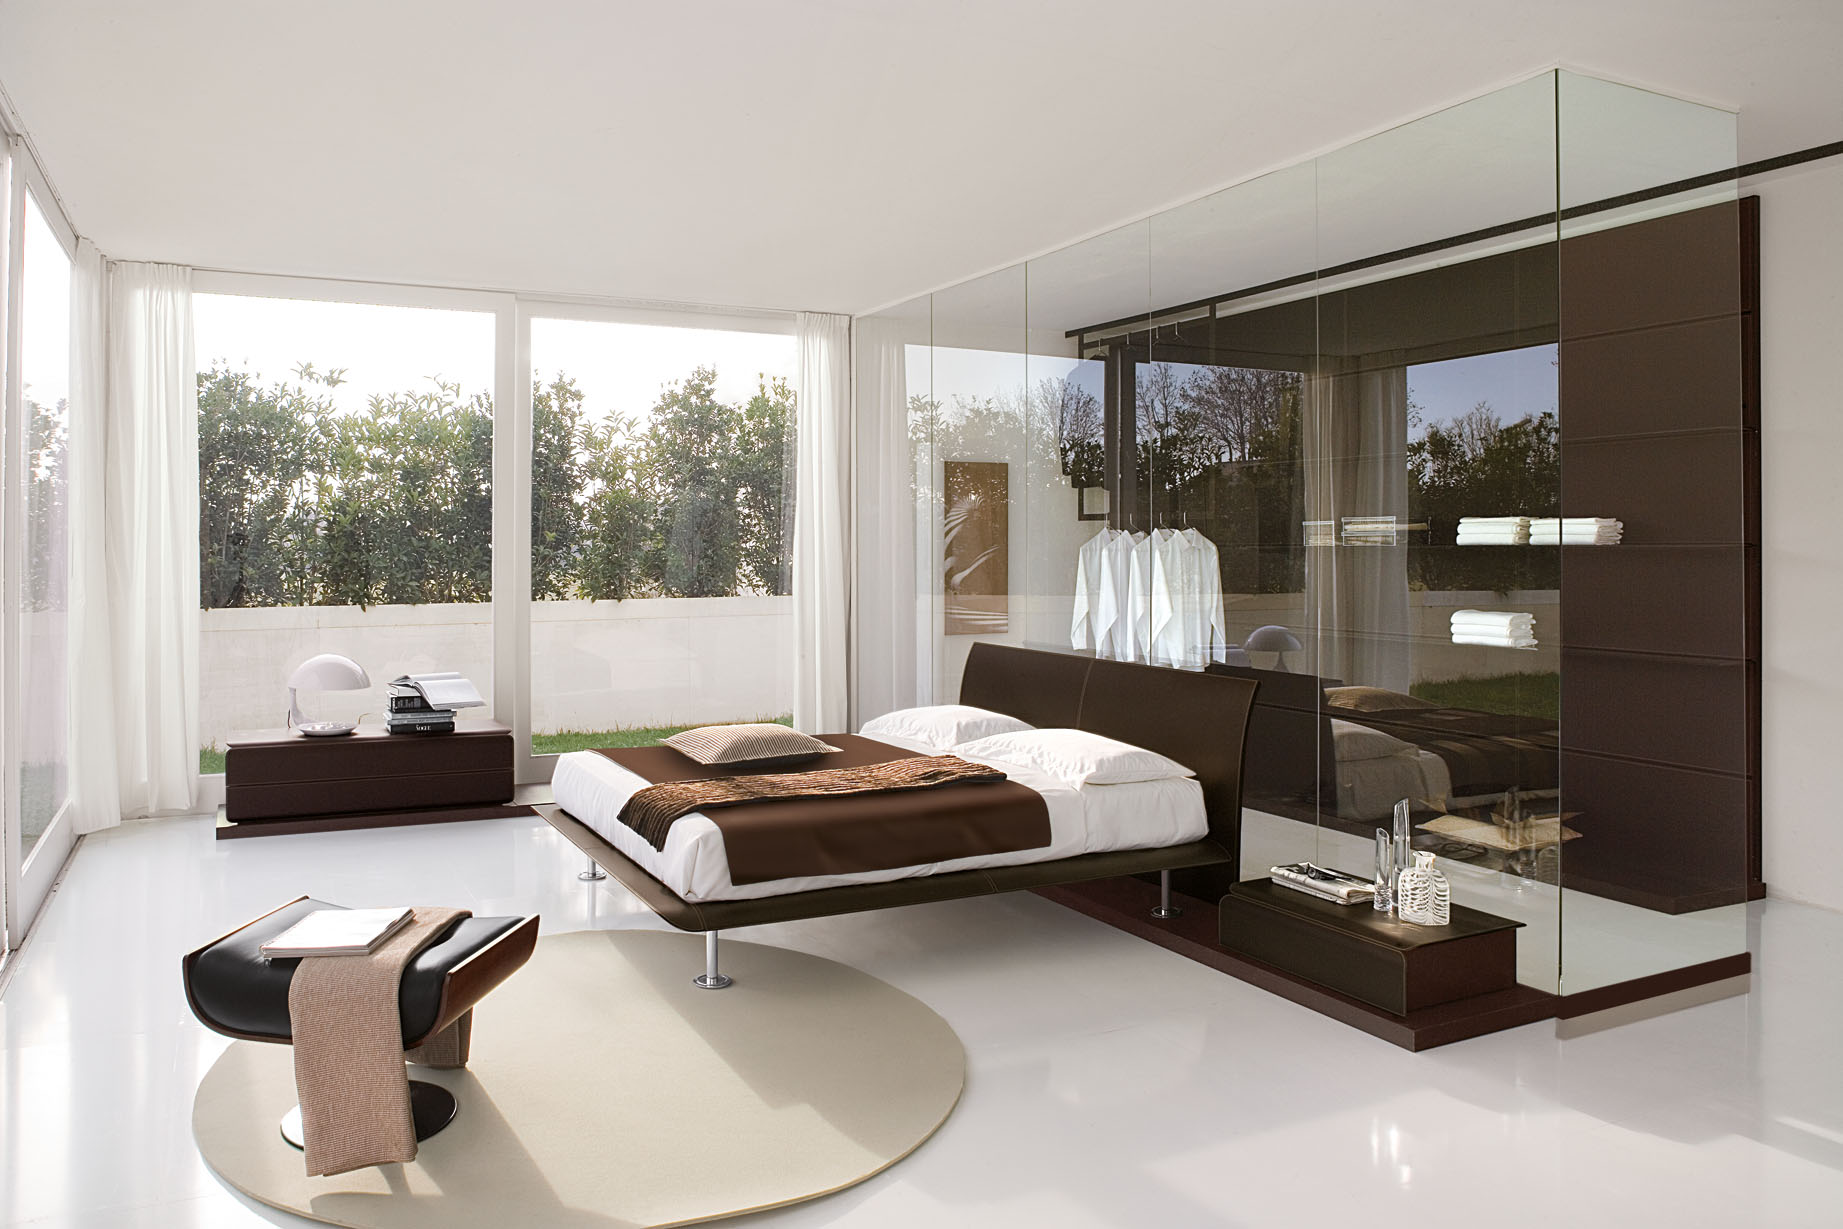 25 COOL GLASS BEDROOM DESIGNS TO DREAM ABOUT Godfather Style